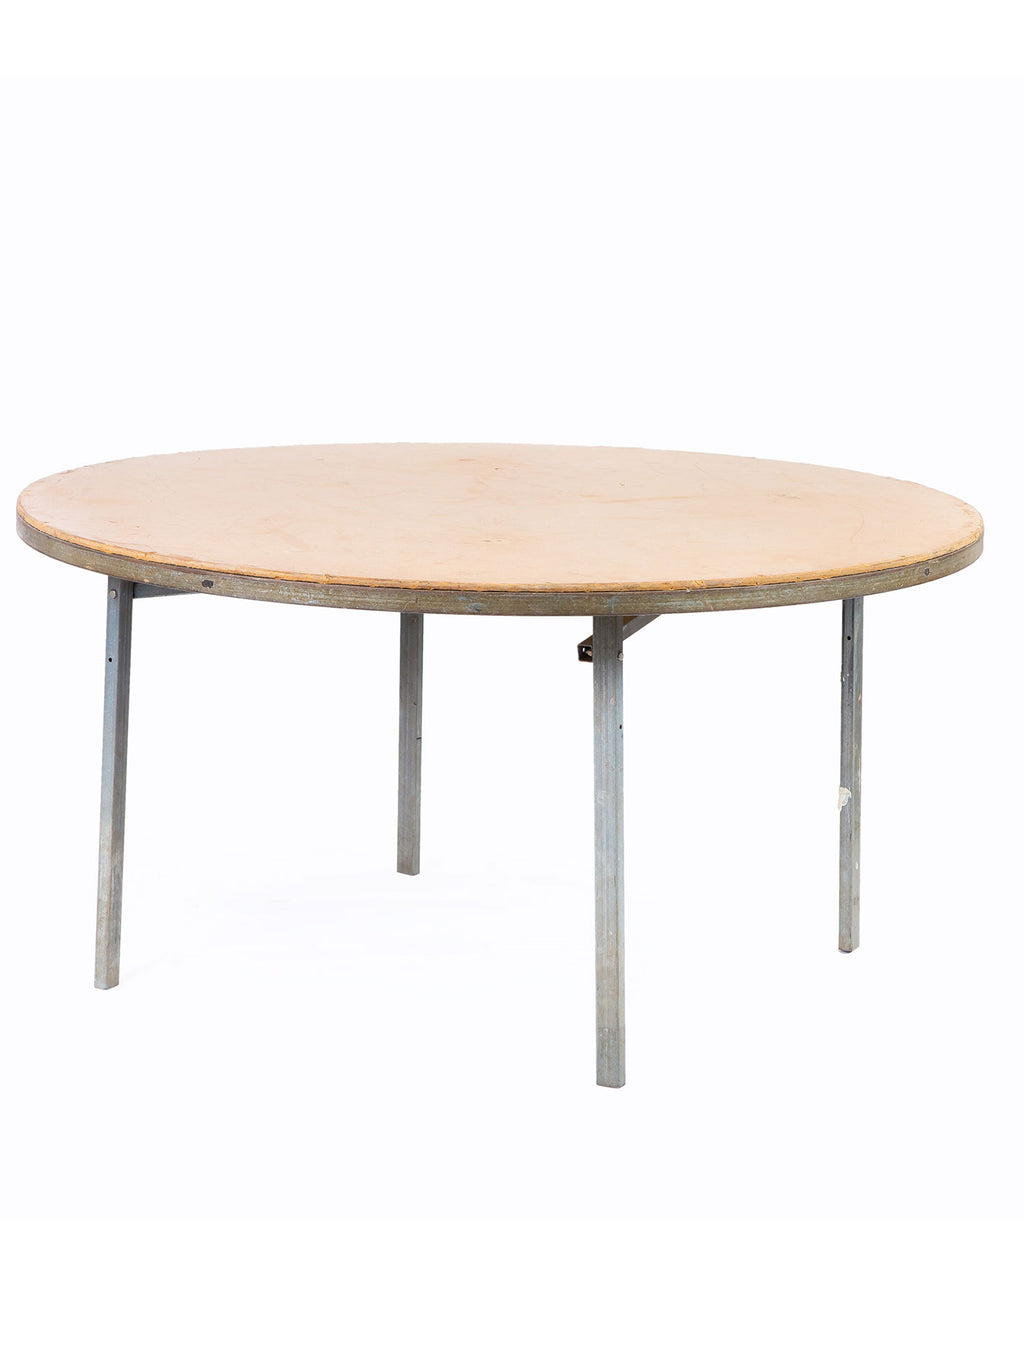 Table - Round 5ft